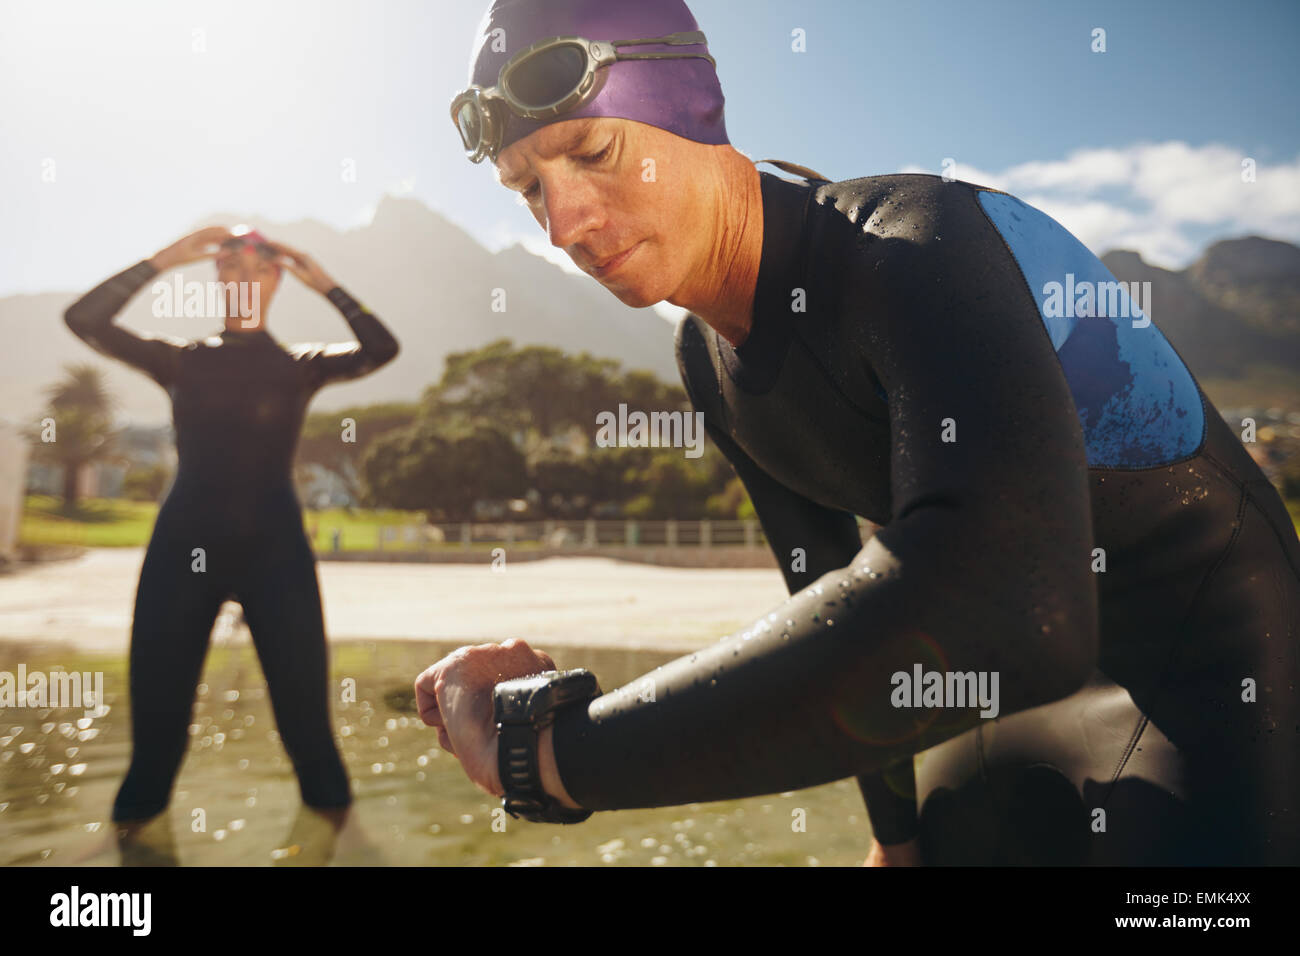 Focused young man checking his watch while in wetsuit at the lake. Man looking at watch after practice run. Triathletes. - Stock Image